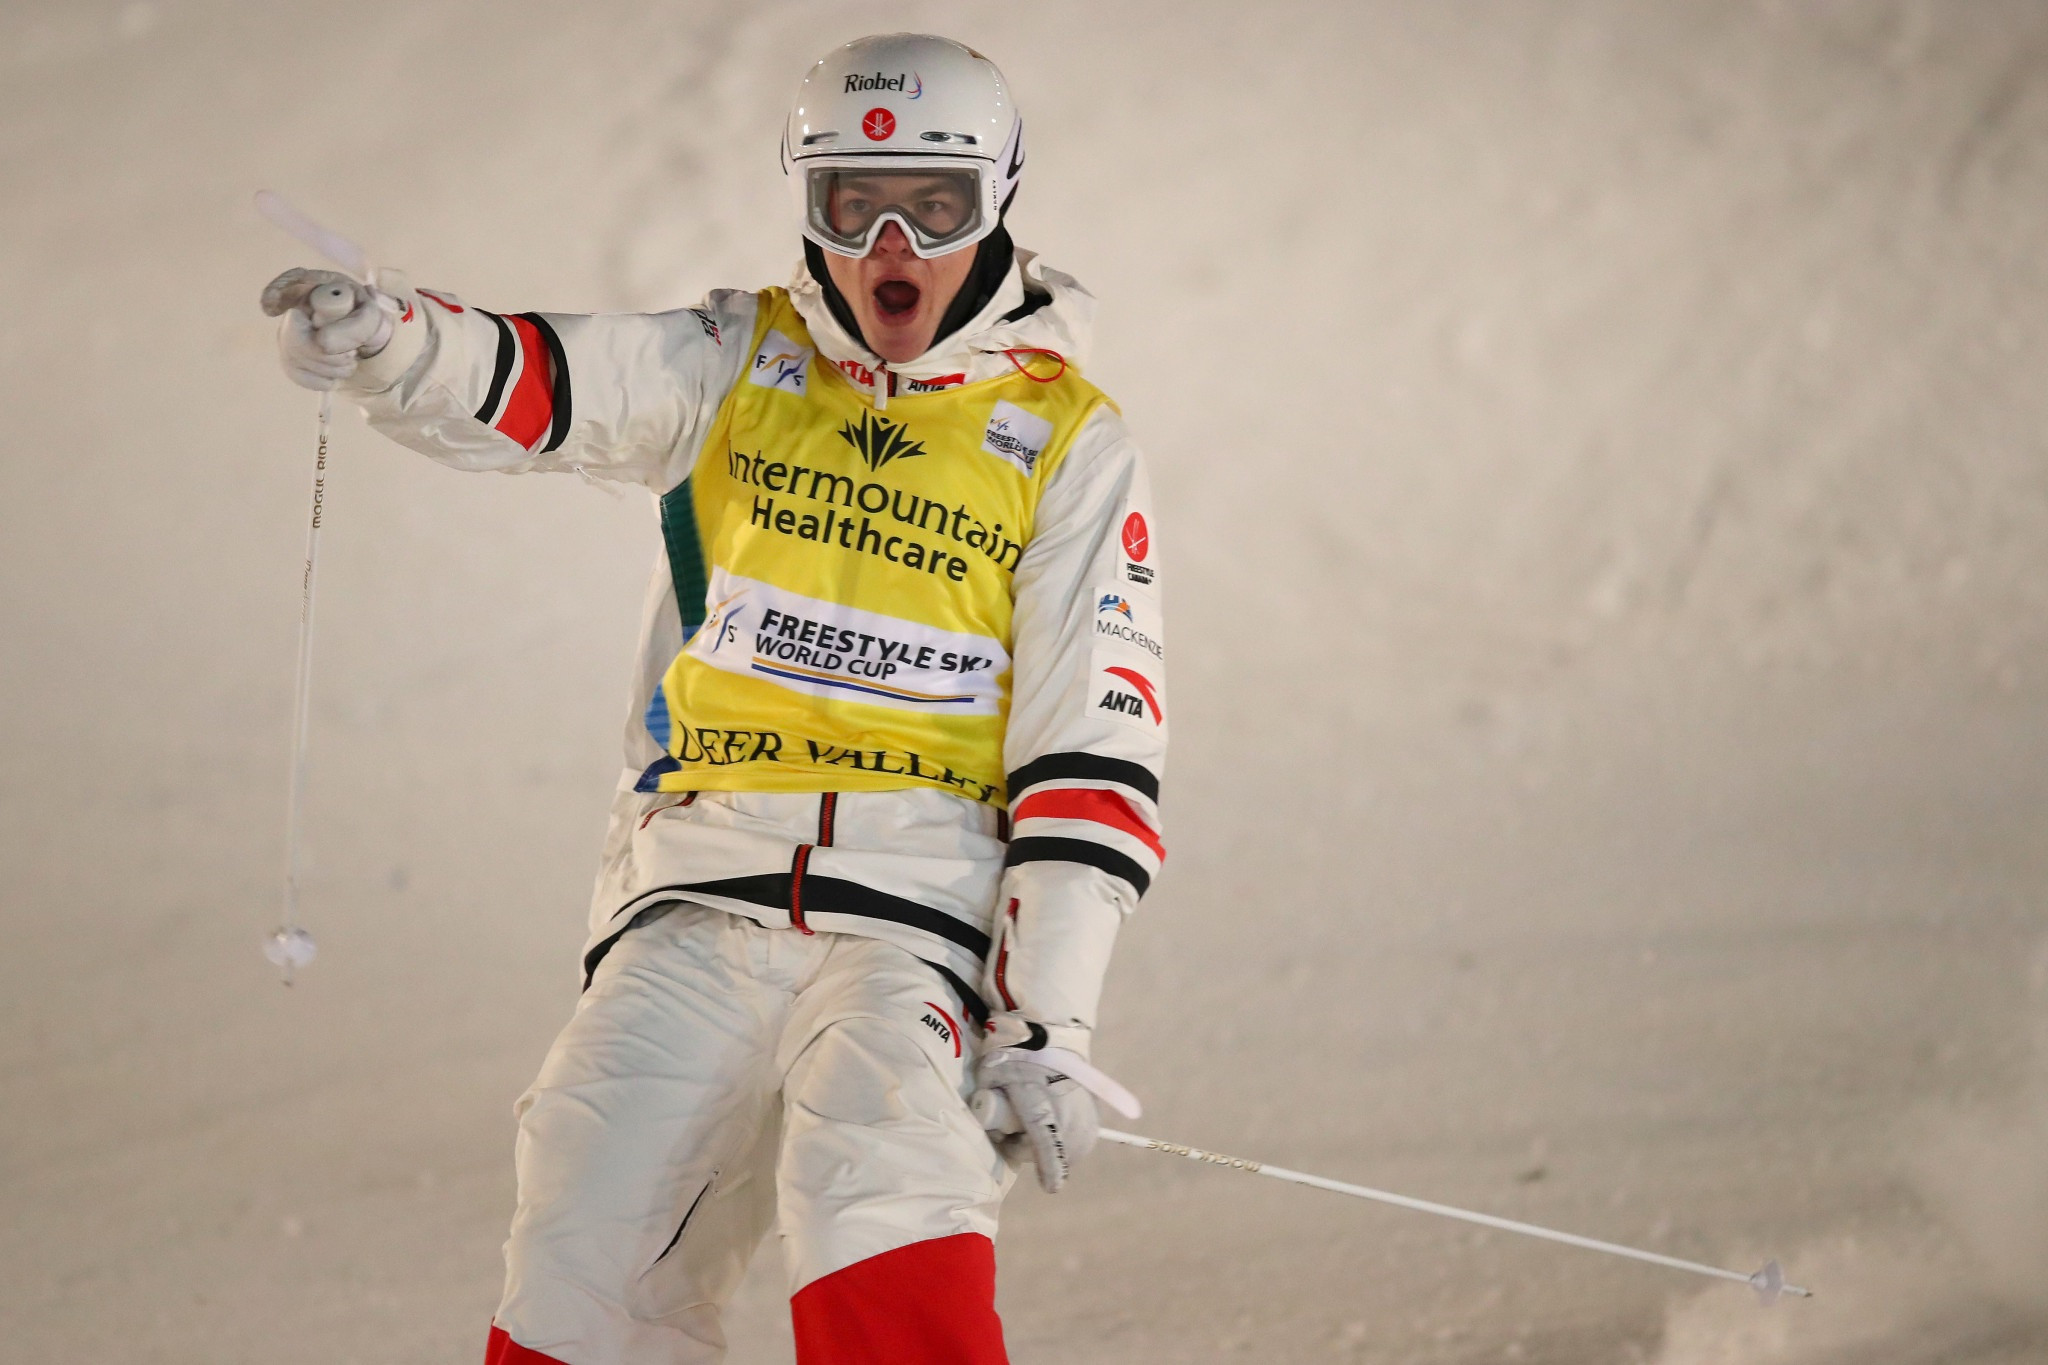 Canada's Mikaël Kingsbury is set to defend two world moguls titles in Almaty ©Getty Images